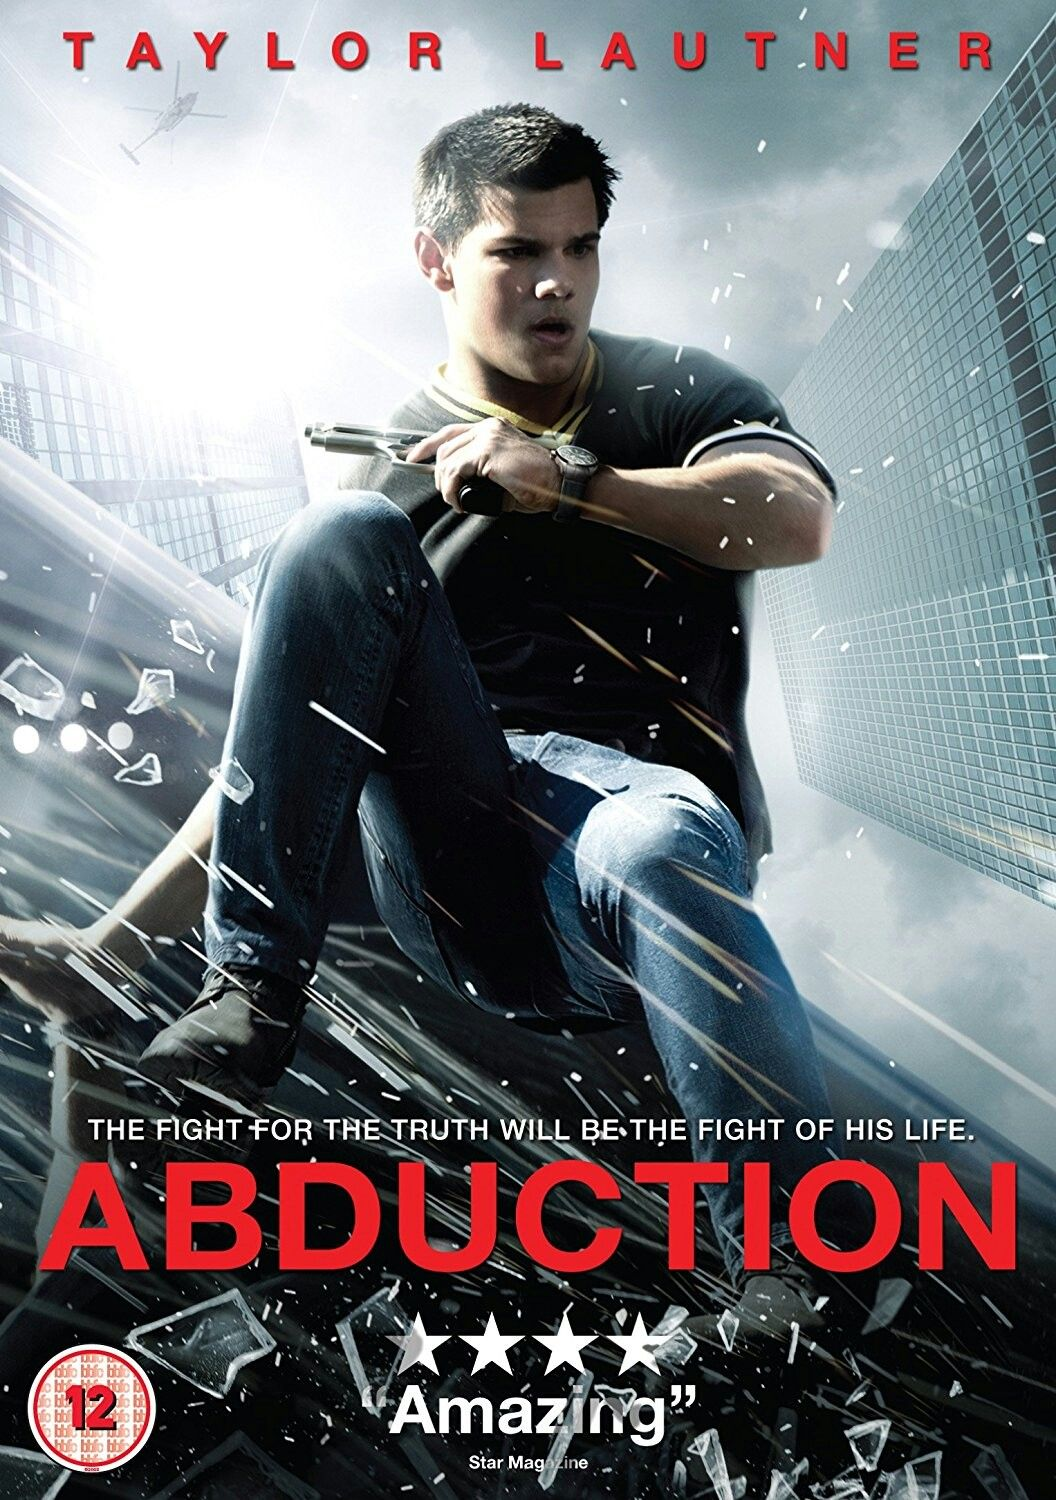 Abduction (2011) | movie | Taylor lautner, Movies to watch ...